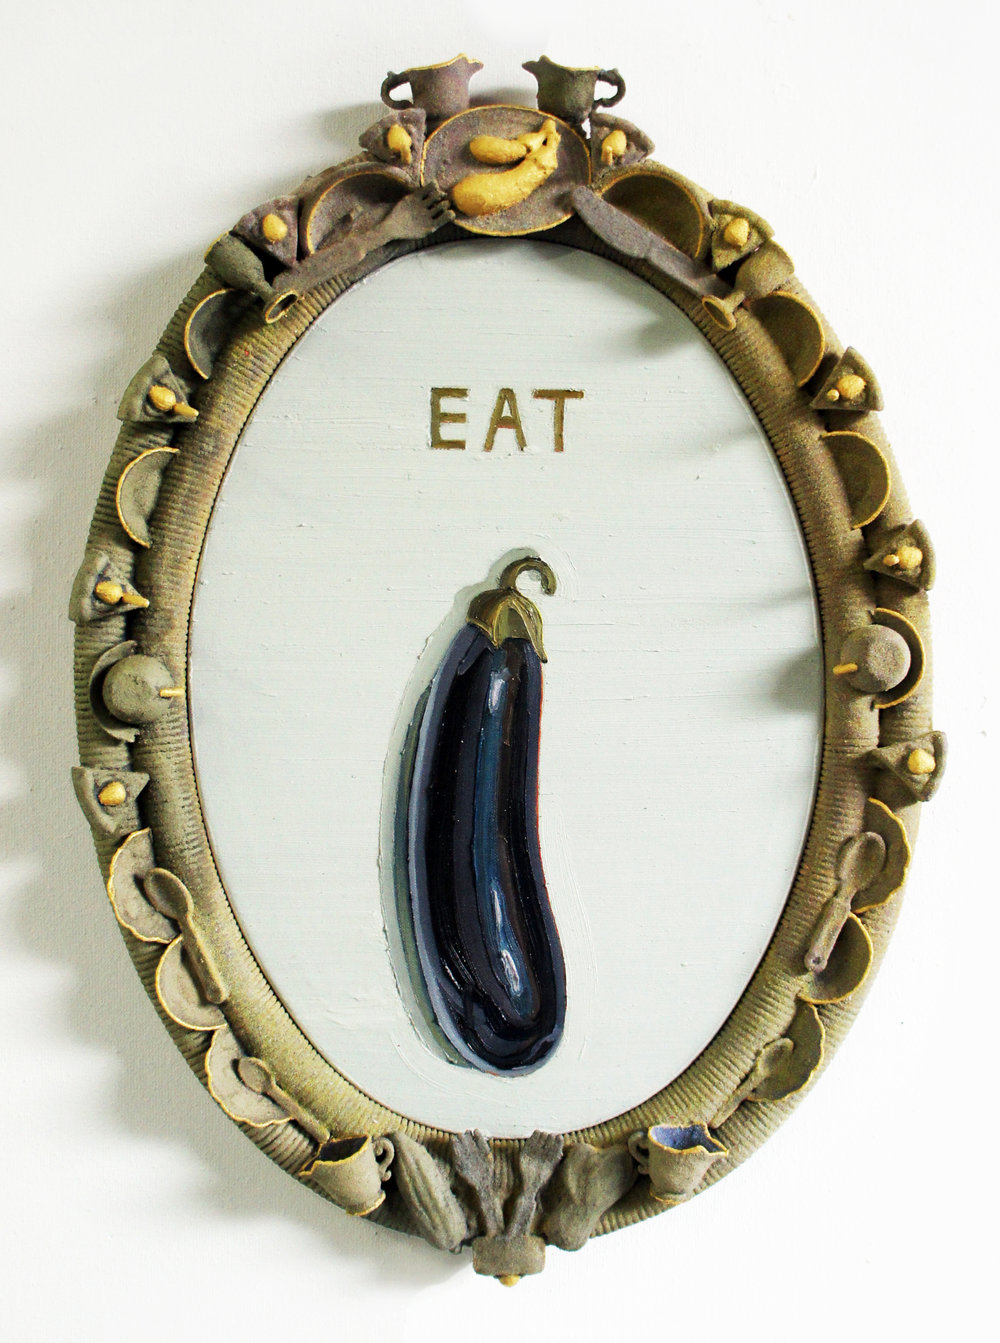 EAT (a dick)  Oil on canvas / Frame: oil, acrylic + sand on plastic  19 x 28 IN